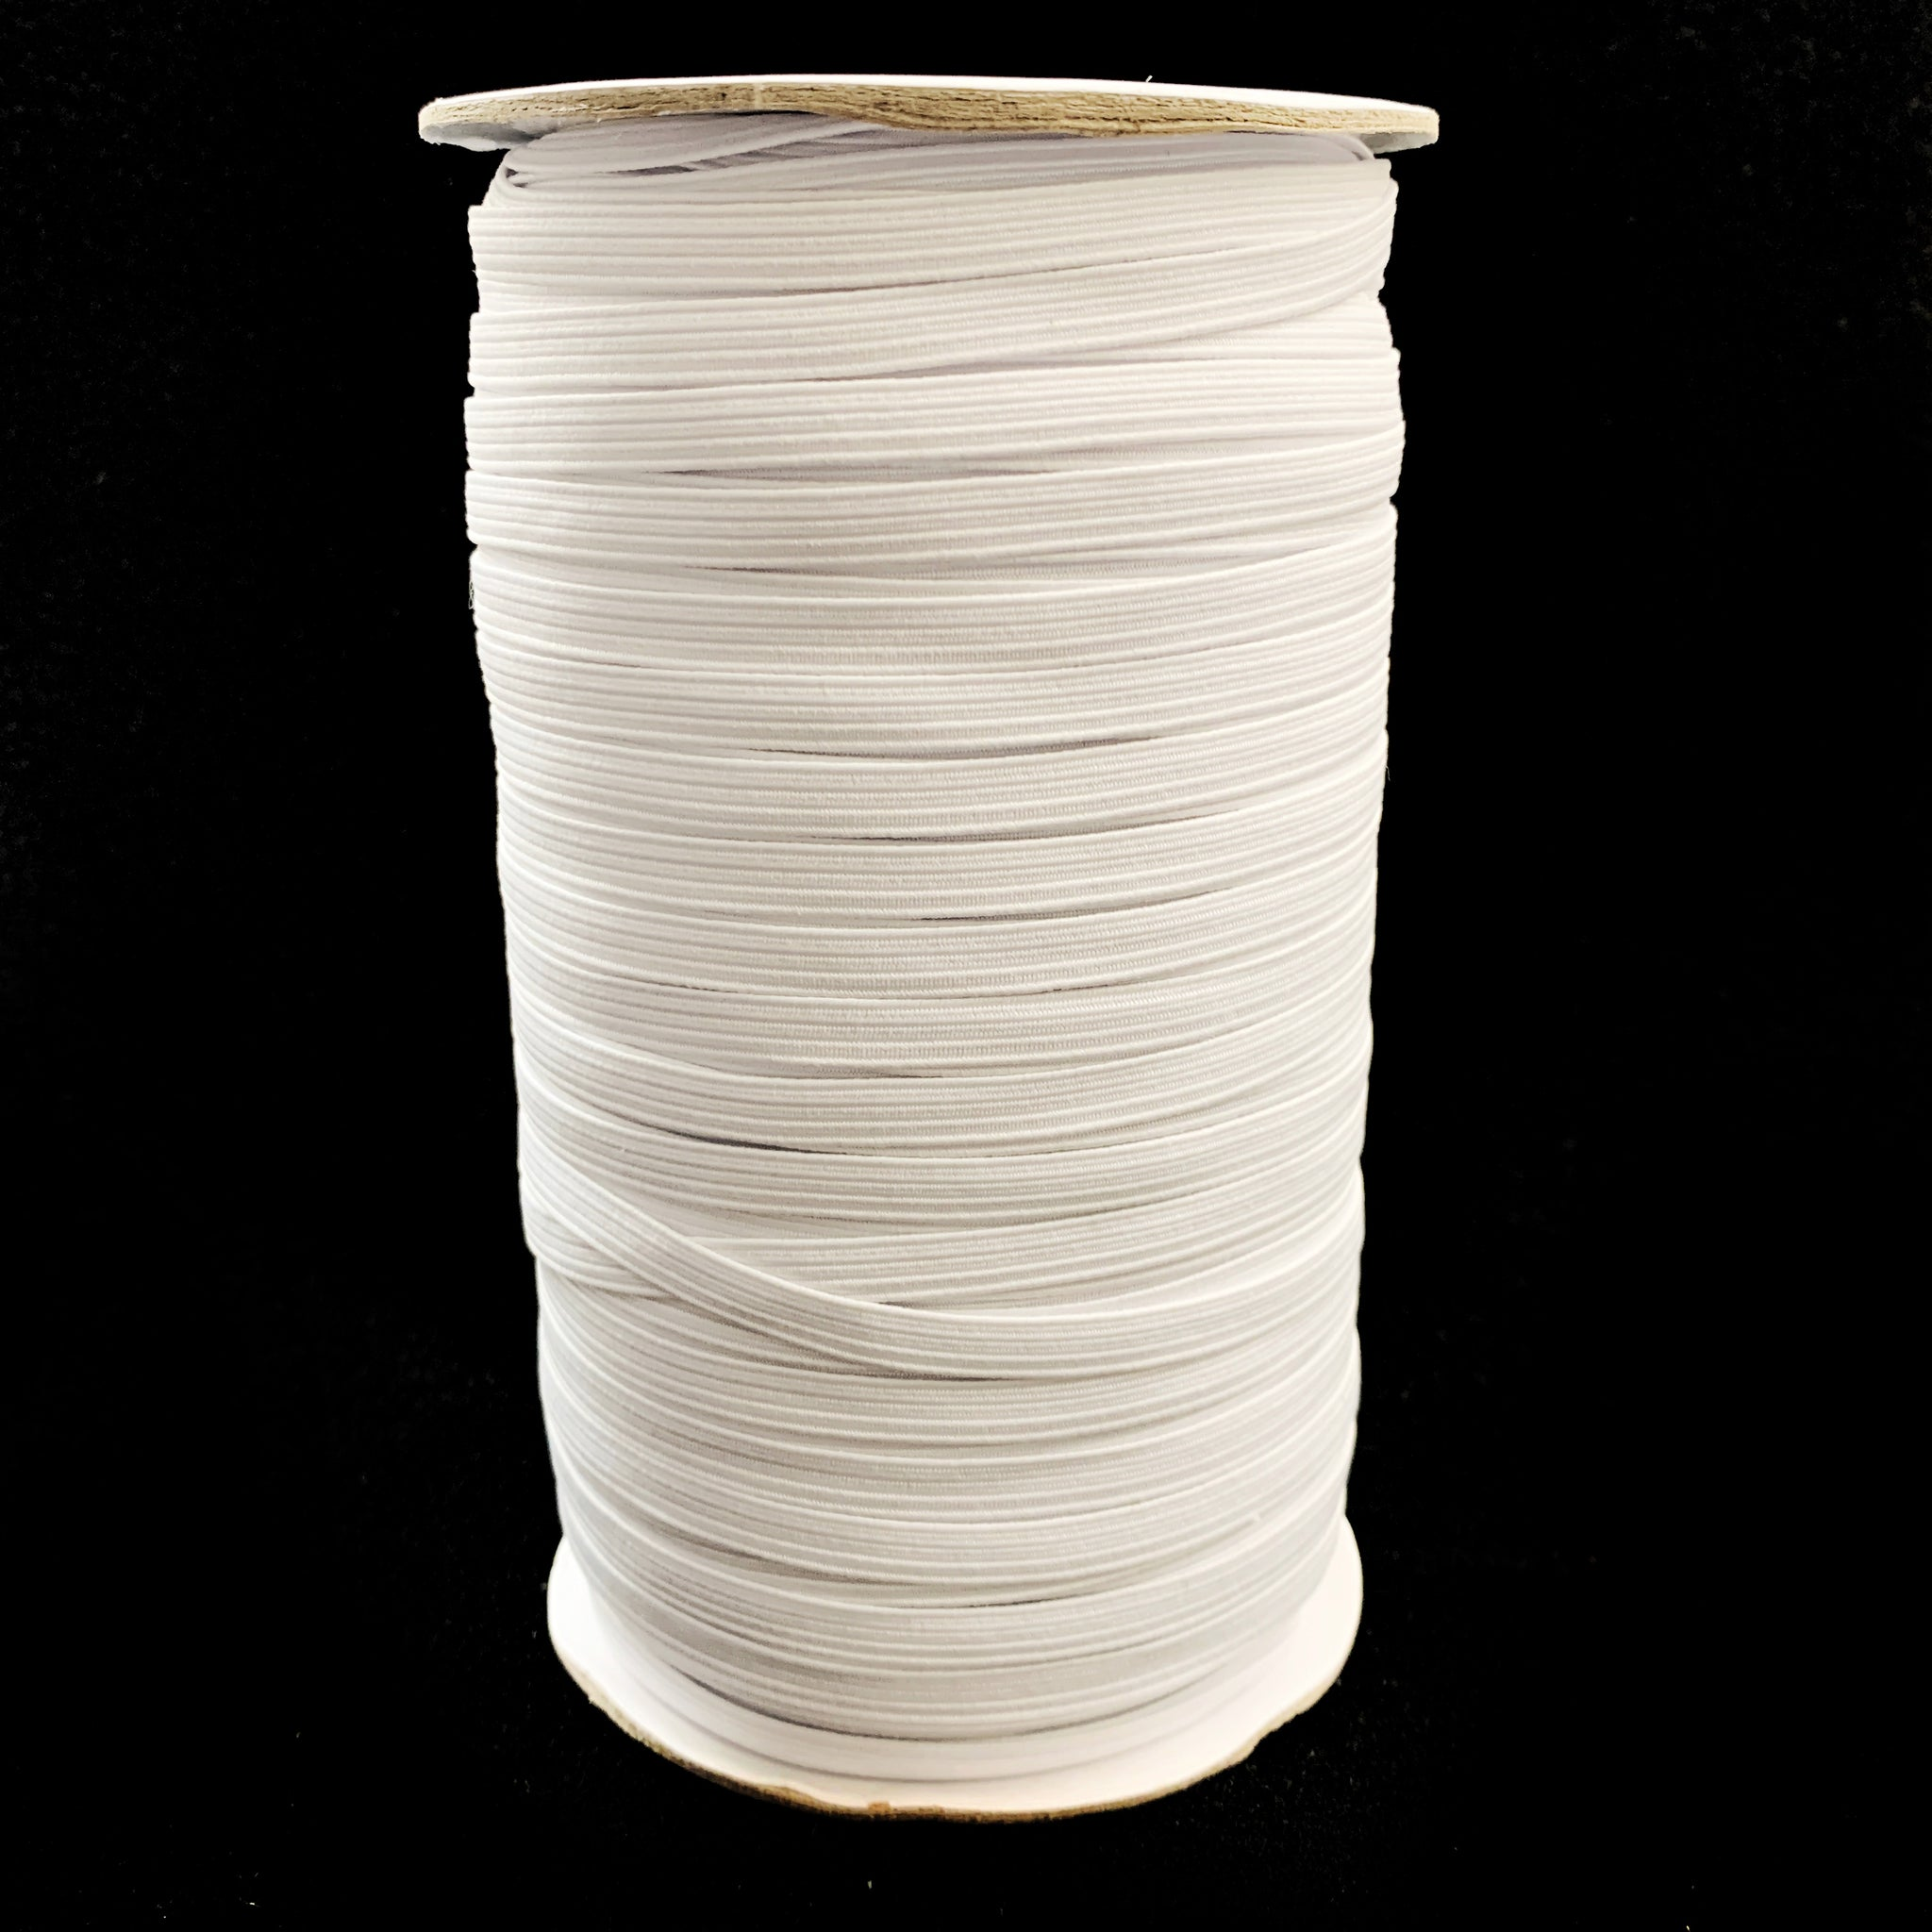 "1/4"" Braided Elastic - White - 1 Roll (200 Yards)"